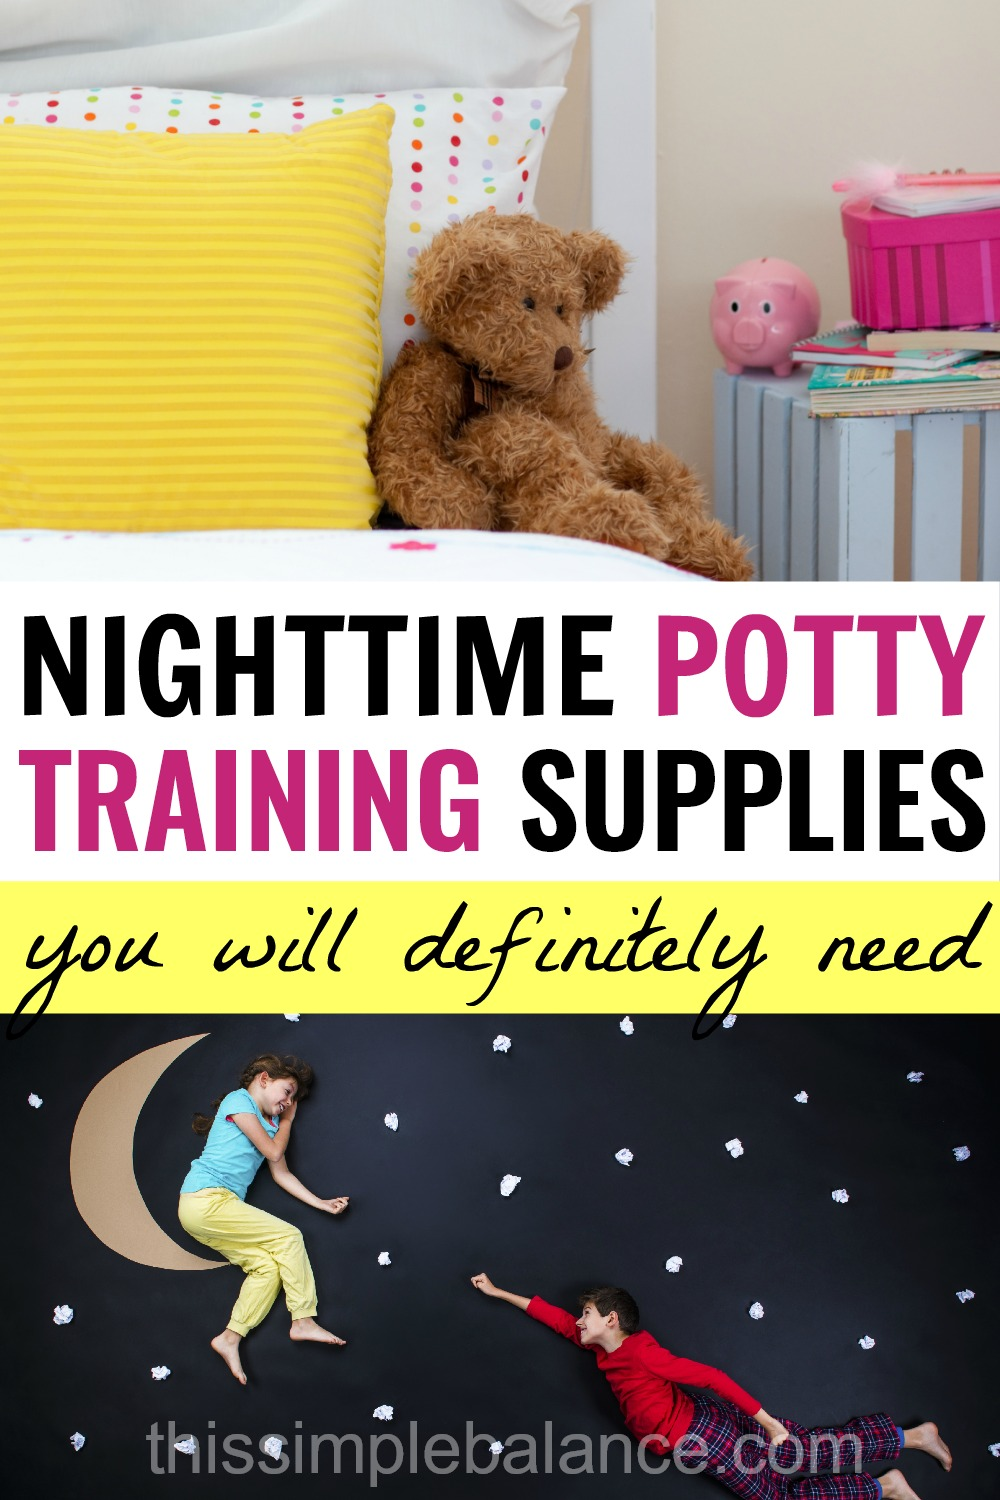 Nighttime Potty Training Products, especially helpful for 4 year olds and up!